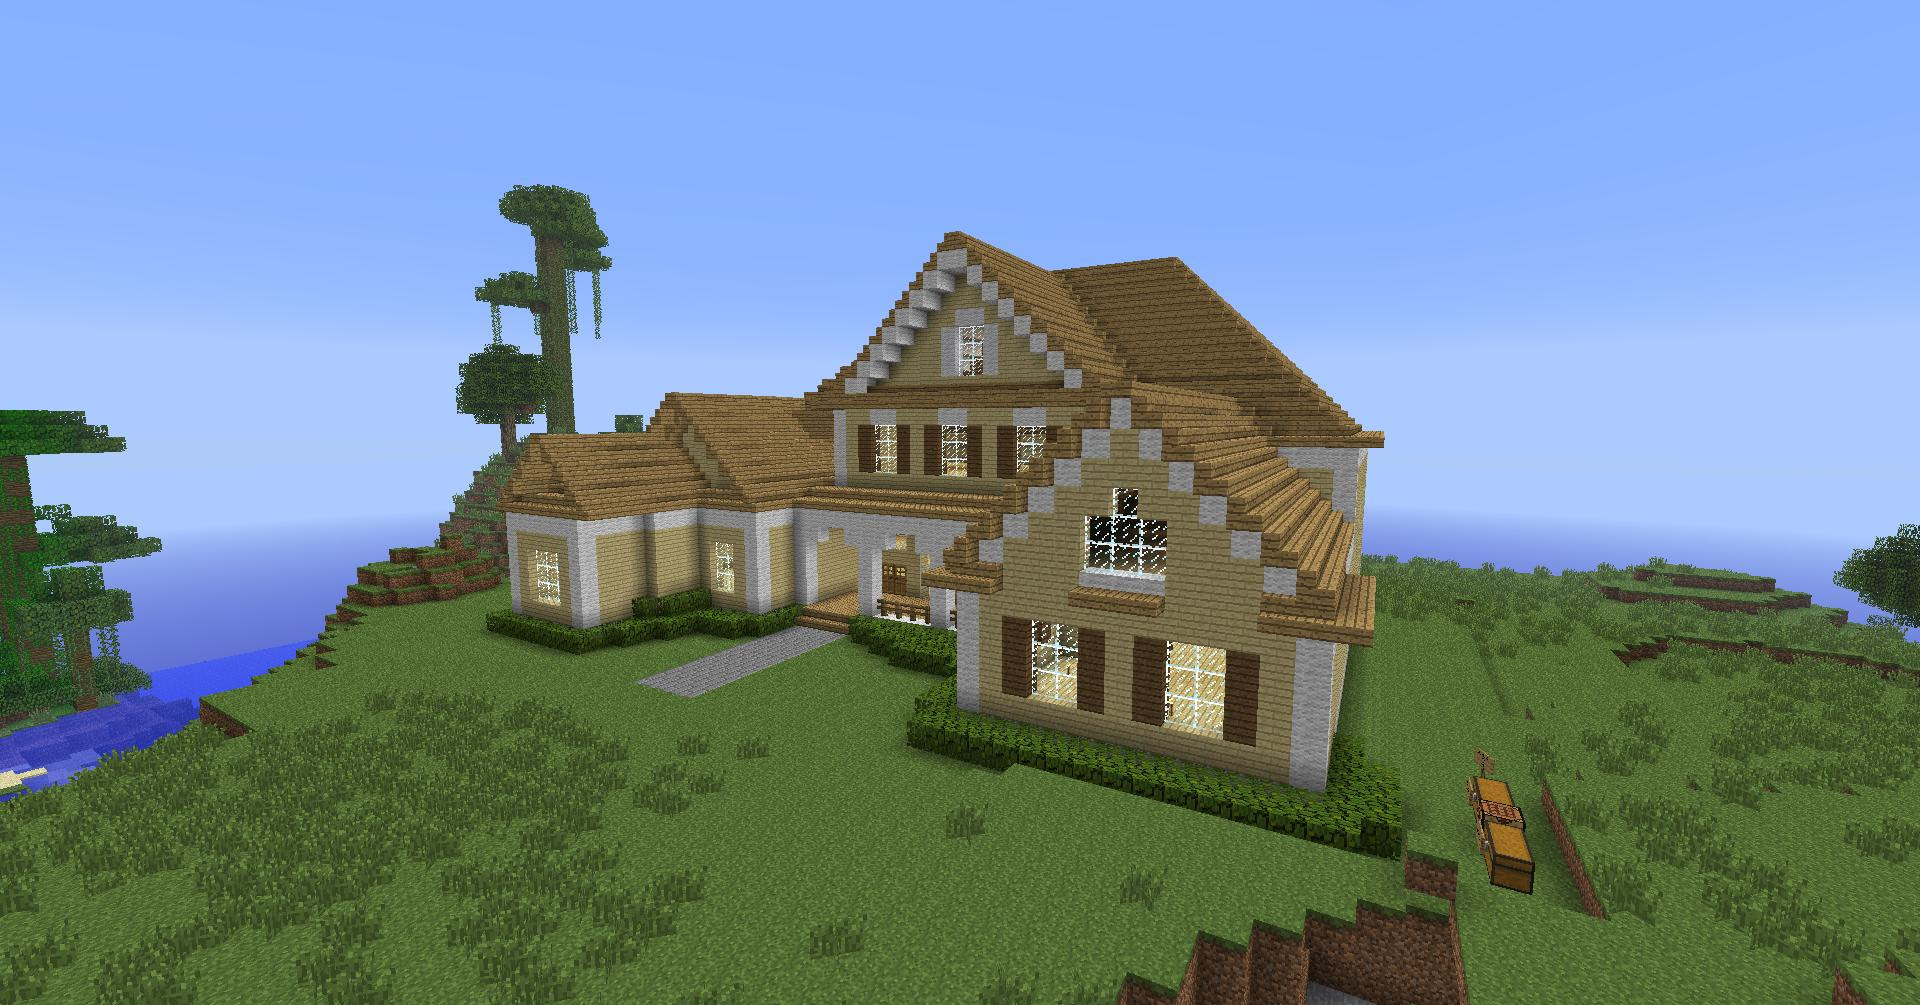 Minecraft House Roof Make a Roof in Minecraft, simple ...